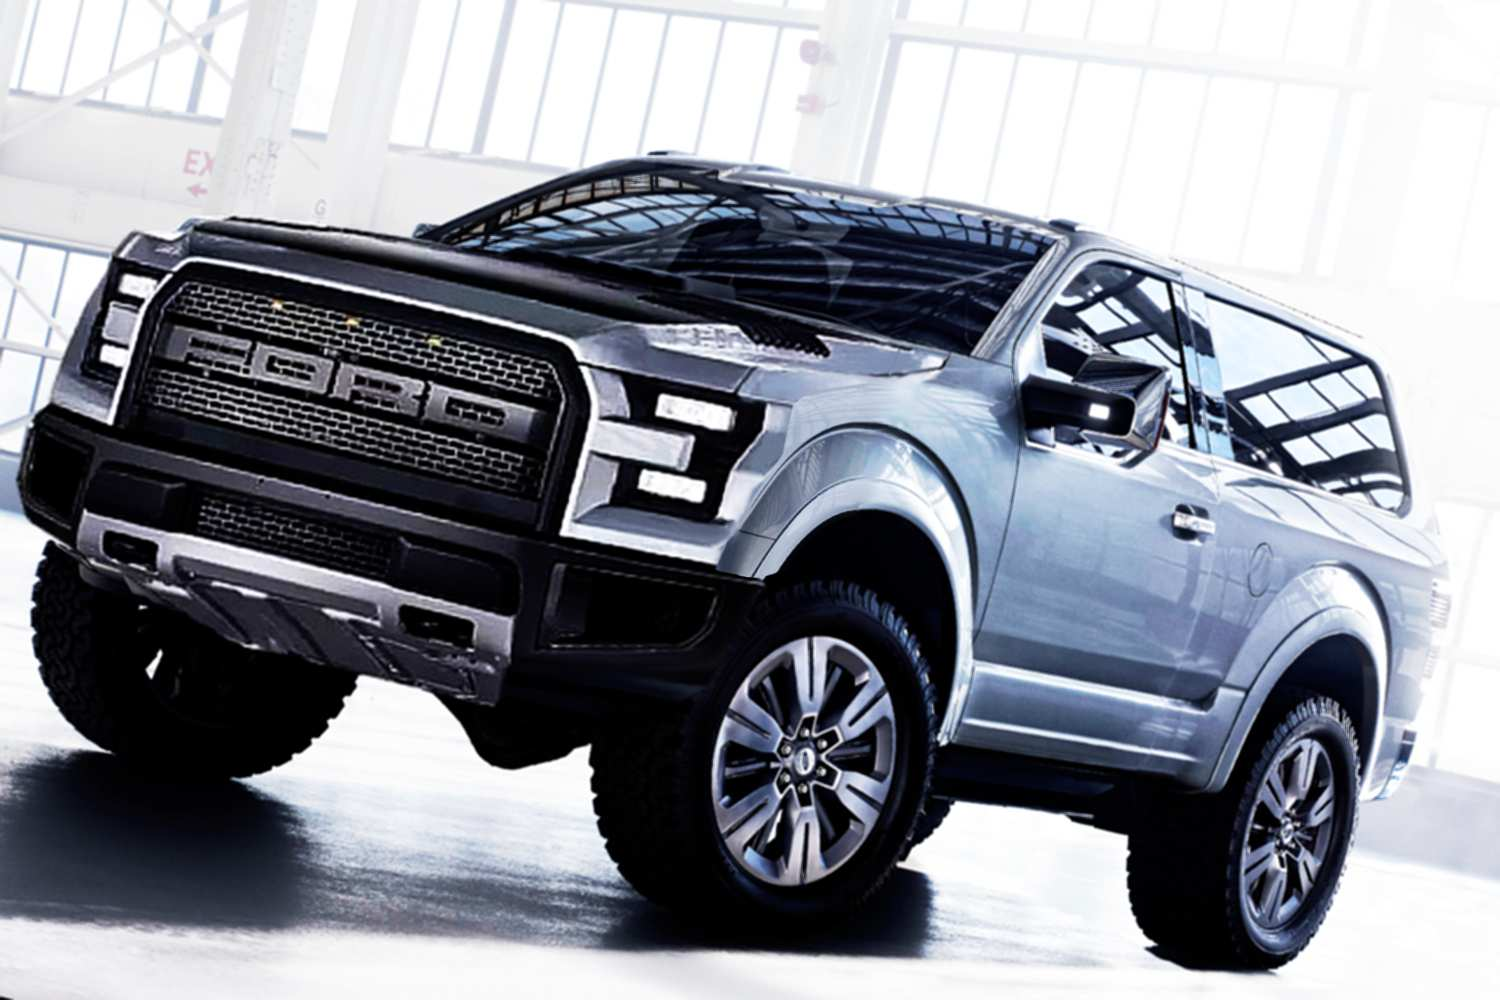 57 Great 2020 Ford Svt Bronco Raptor Specs and Review for 2020 Ford Svt Bronco Raptor